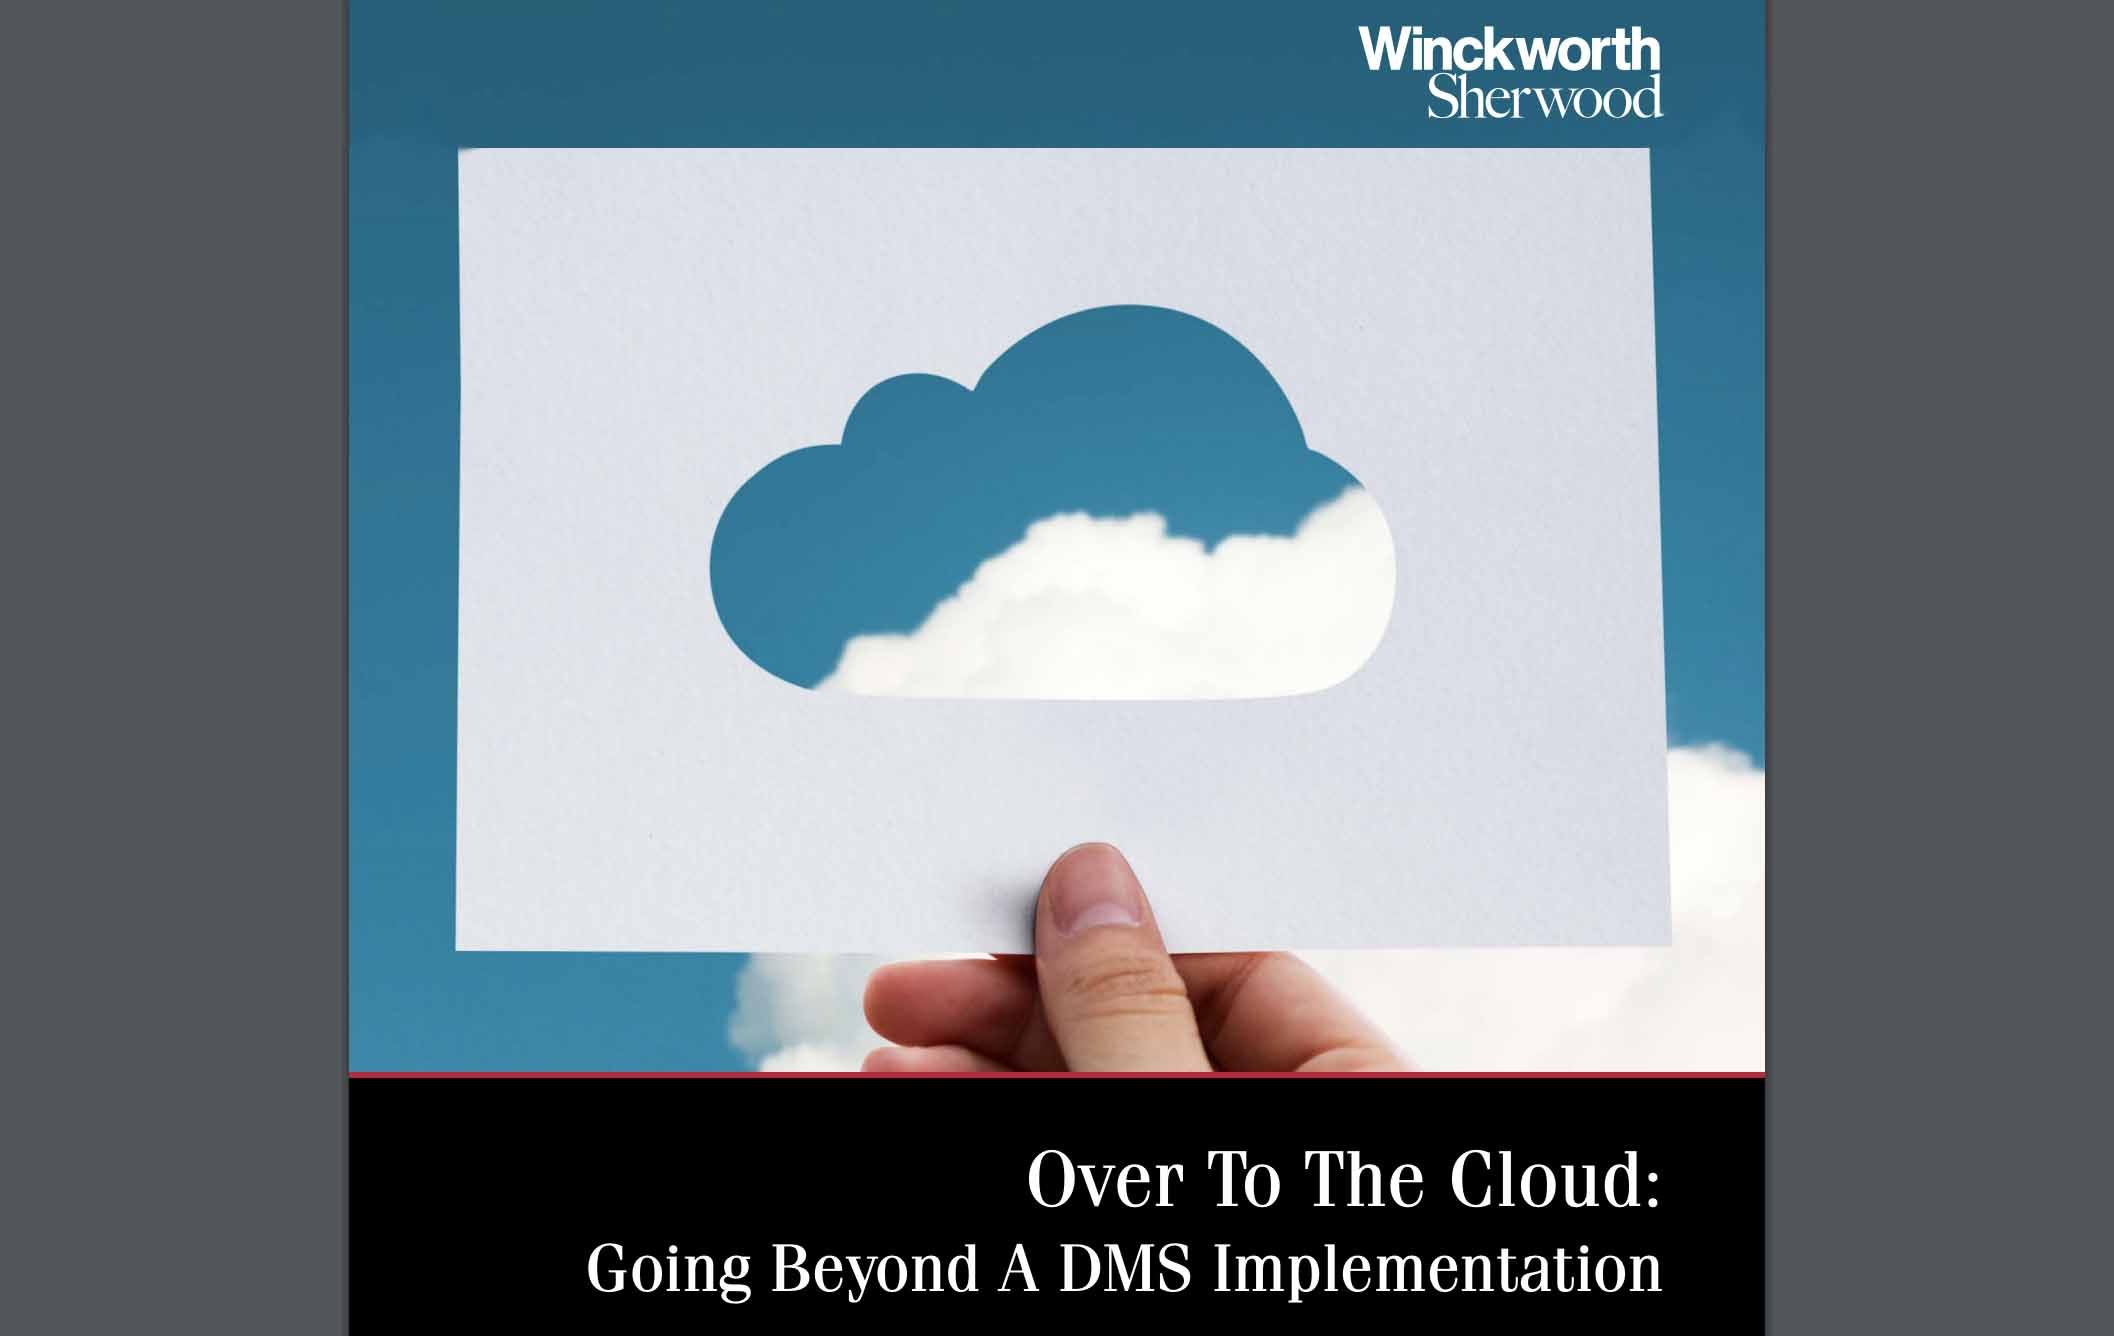 Graphic of a person holding a cloud paper cutout with clouds behind it and the name of the company Winkworth Sherwood.